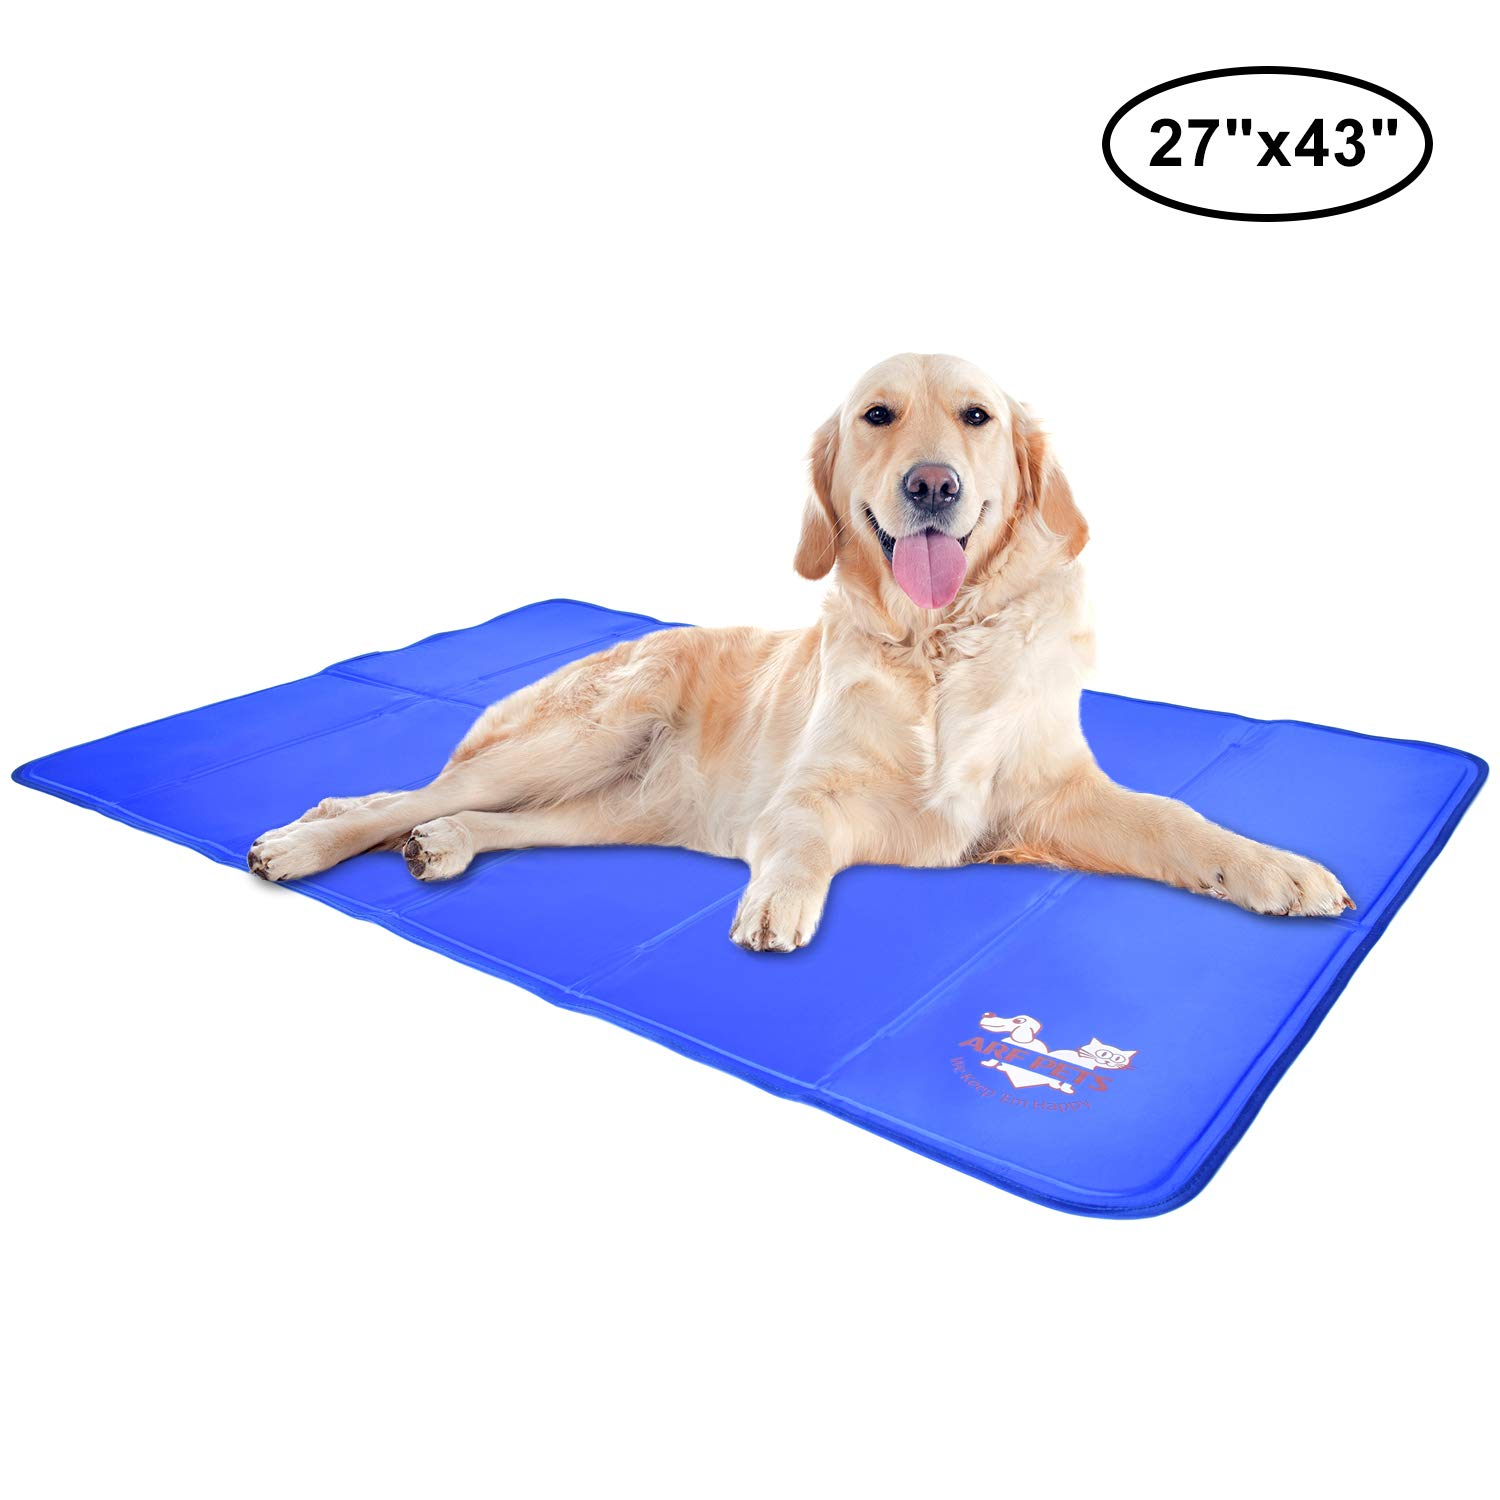 Arf Pets Pet Dog Self Cooling Mat Pad for Kennels, Crates and Beds 27x43 by Arf Pets